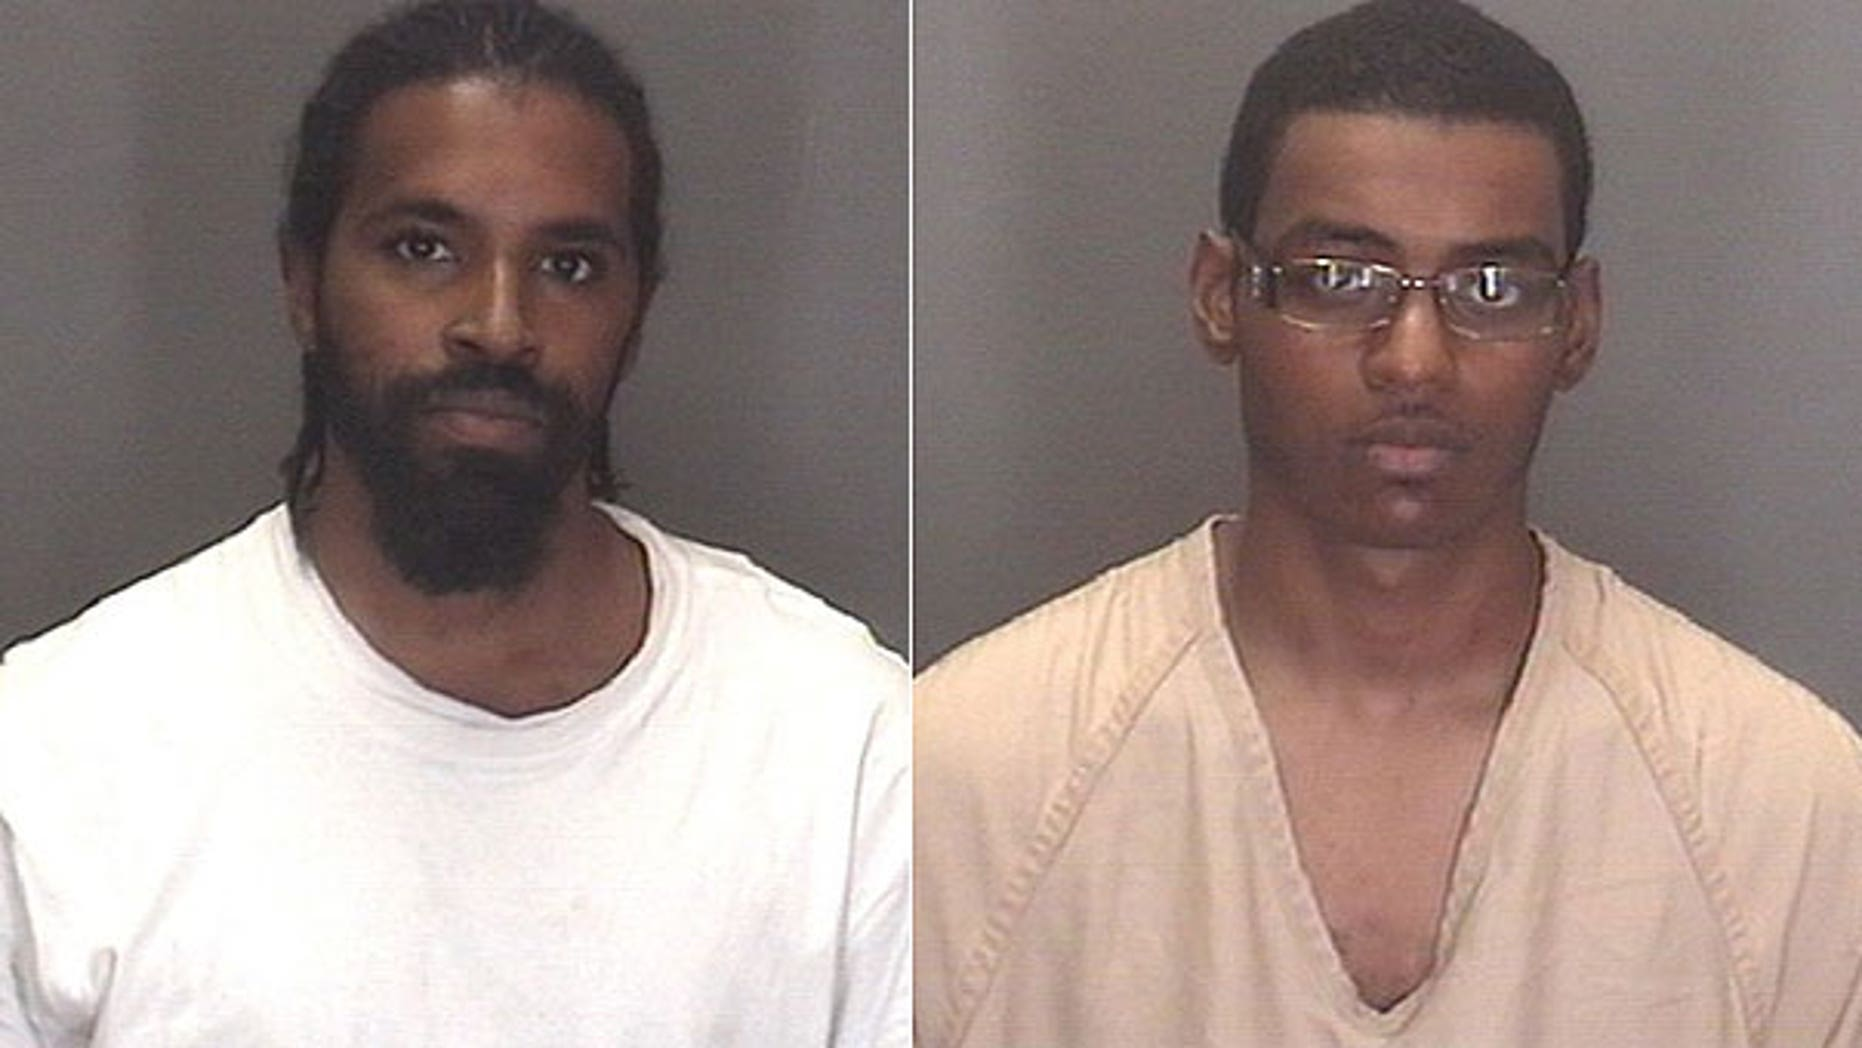 Aug. 1: Kevin D. McCray, left, is wanted on charges of attempted murder and use of a firearm. Steven L. Taggart, right, is charged on an outstanding aggravated assault warrant unrelated to the incident.